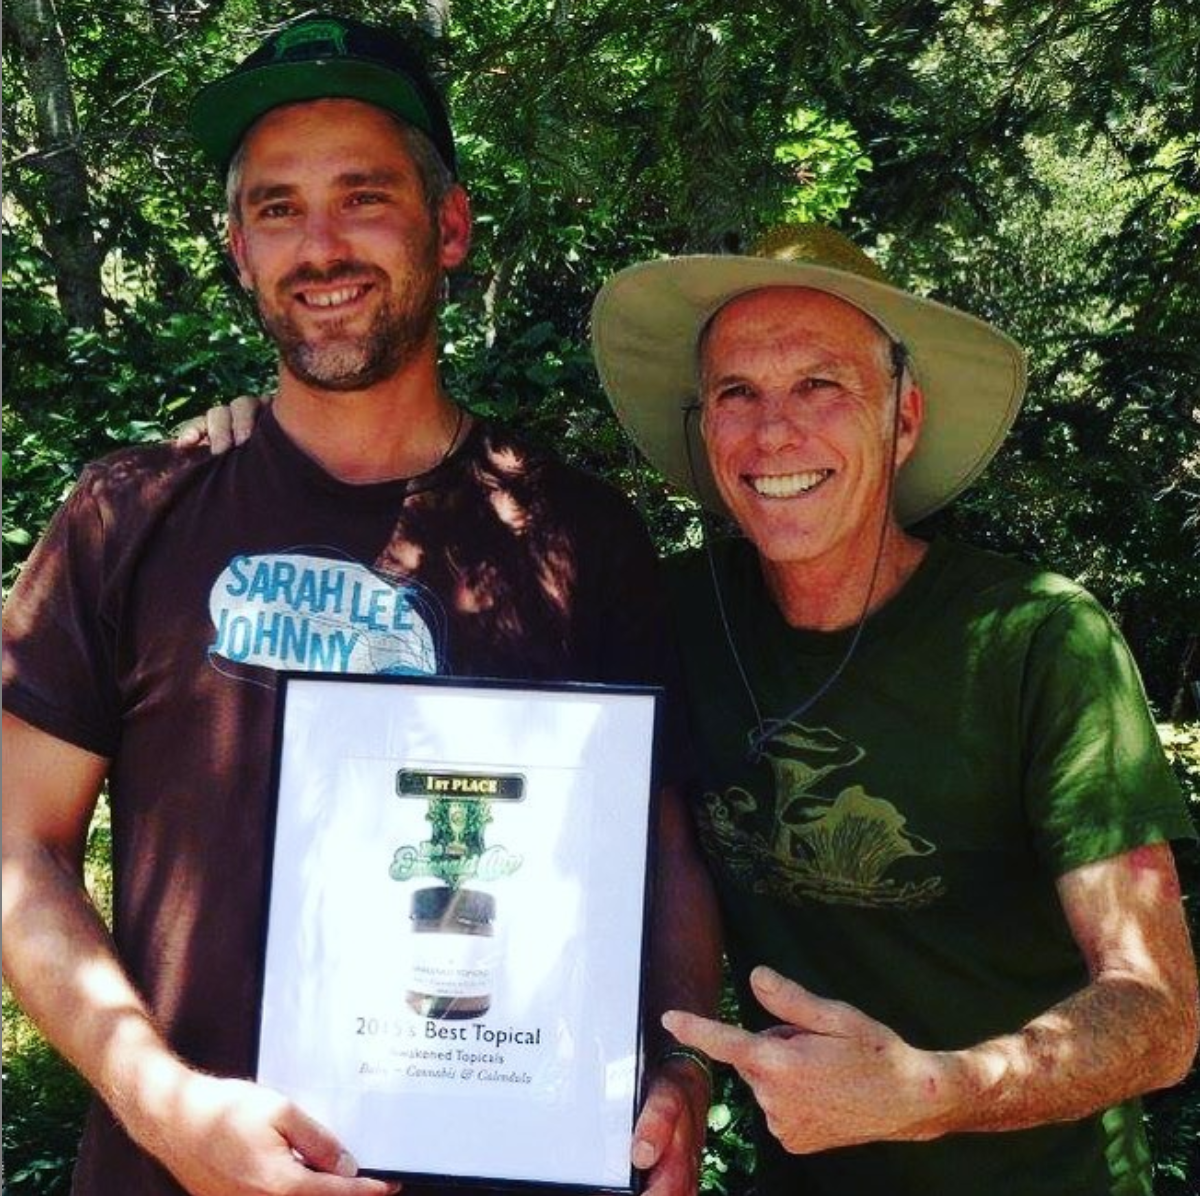 Levi Strom (pictured left) with Emerald Cup founder Tim Blake. Awakened Topicals  Raw Cannabis Balm  placed first at the Emerald Cup in the topicals category in 2015.